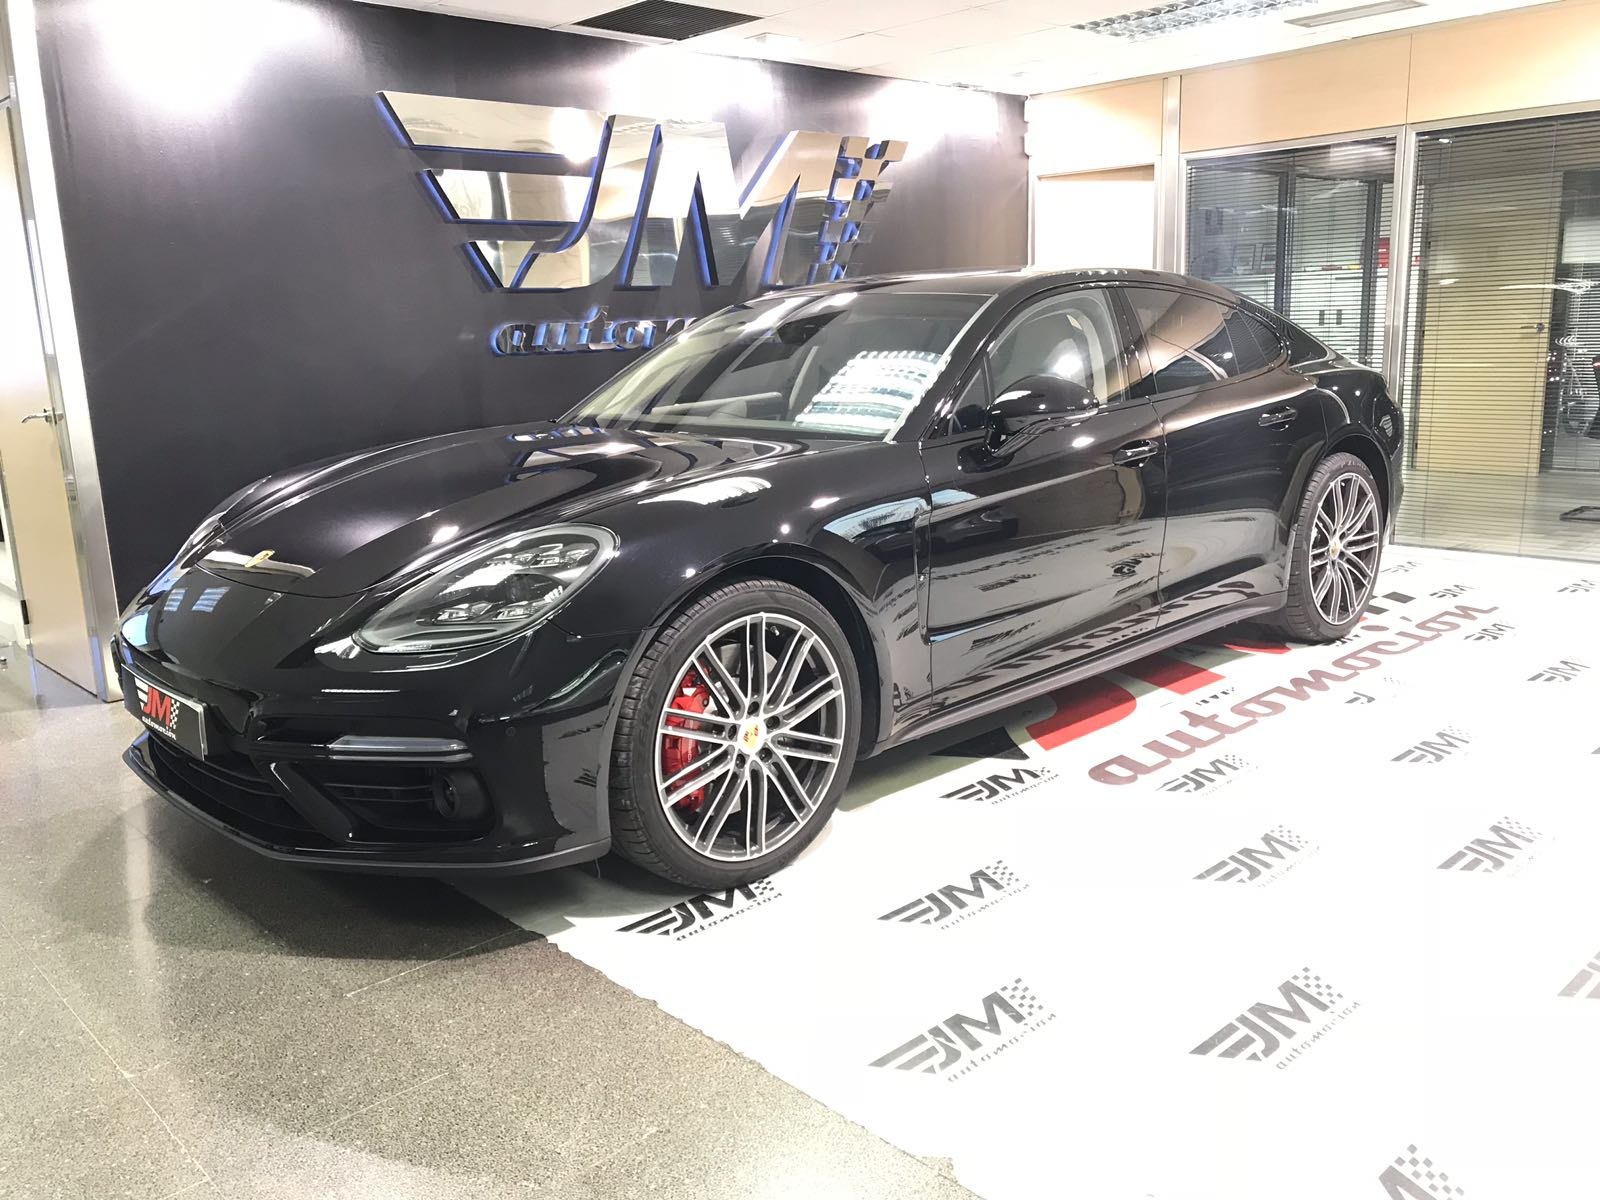 PORSCHE PANAMERA TURBO AUT. NACIONAL, IMPECABLE ESTADO